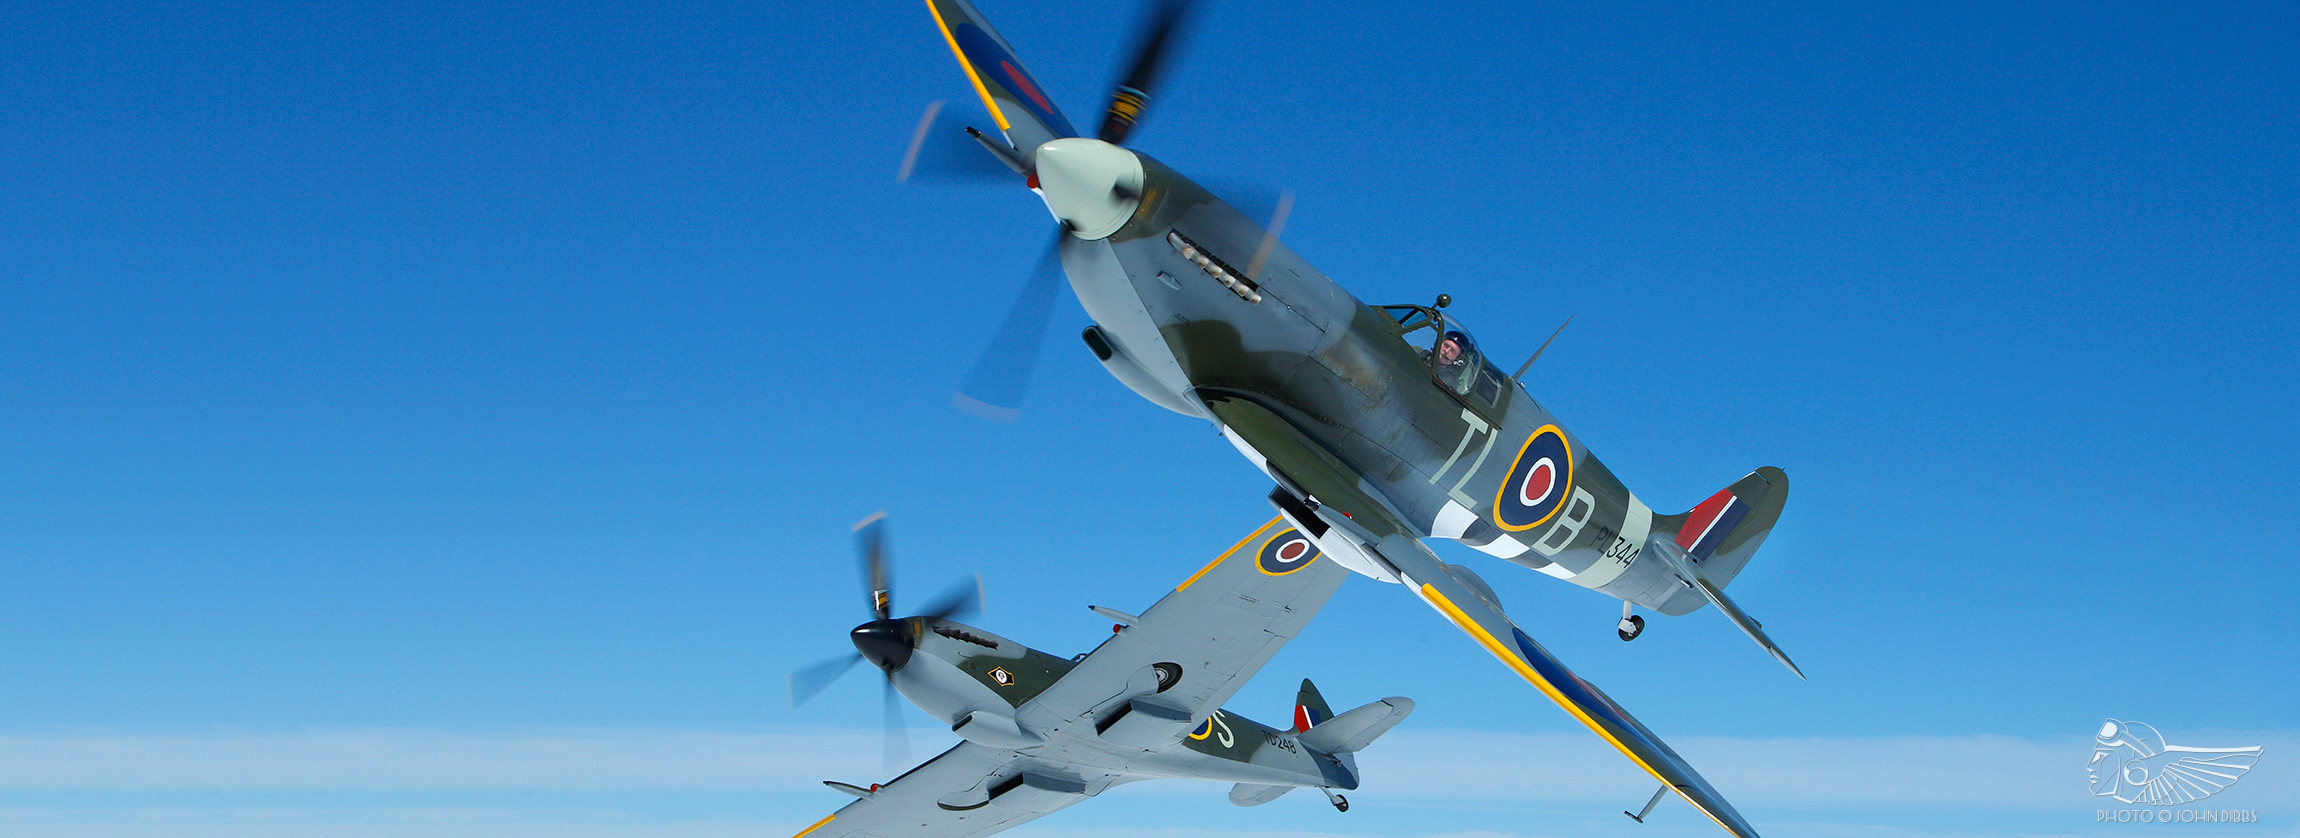 A History: Cliff Spink & the Spitfire